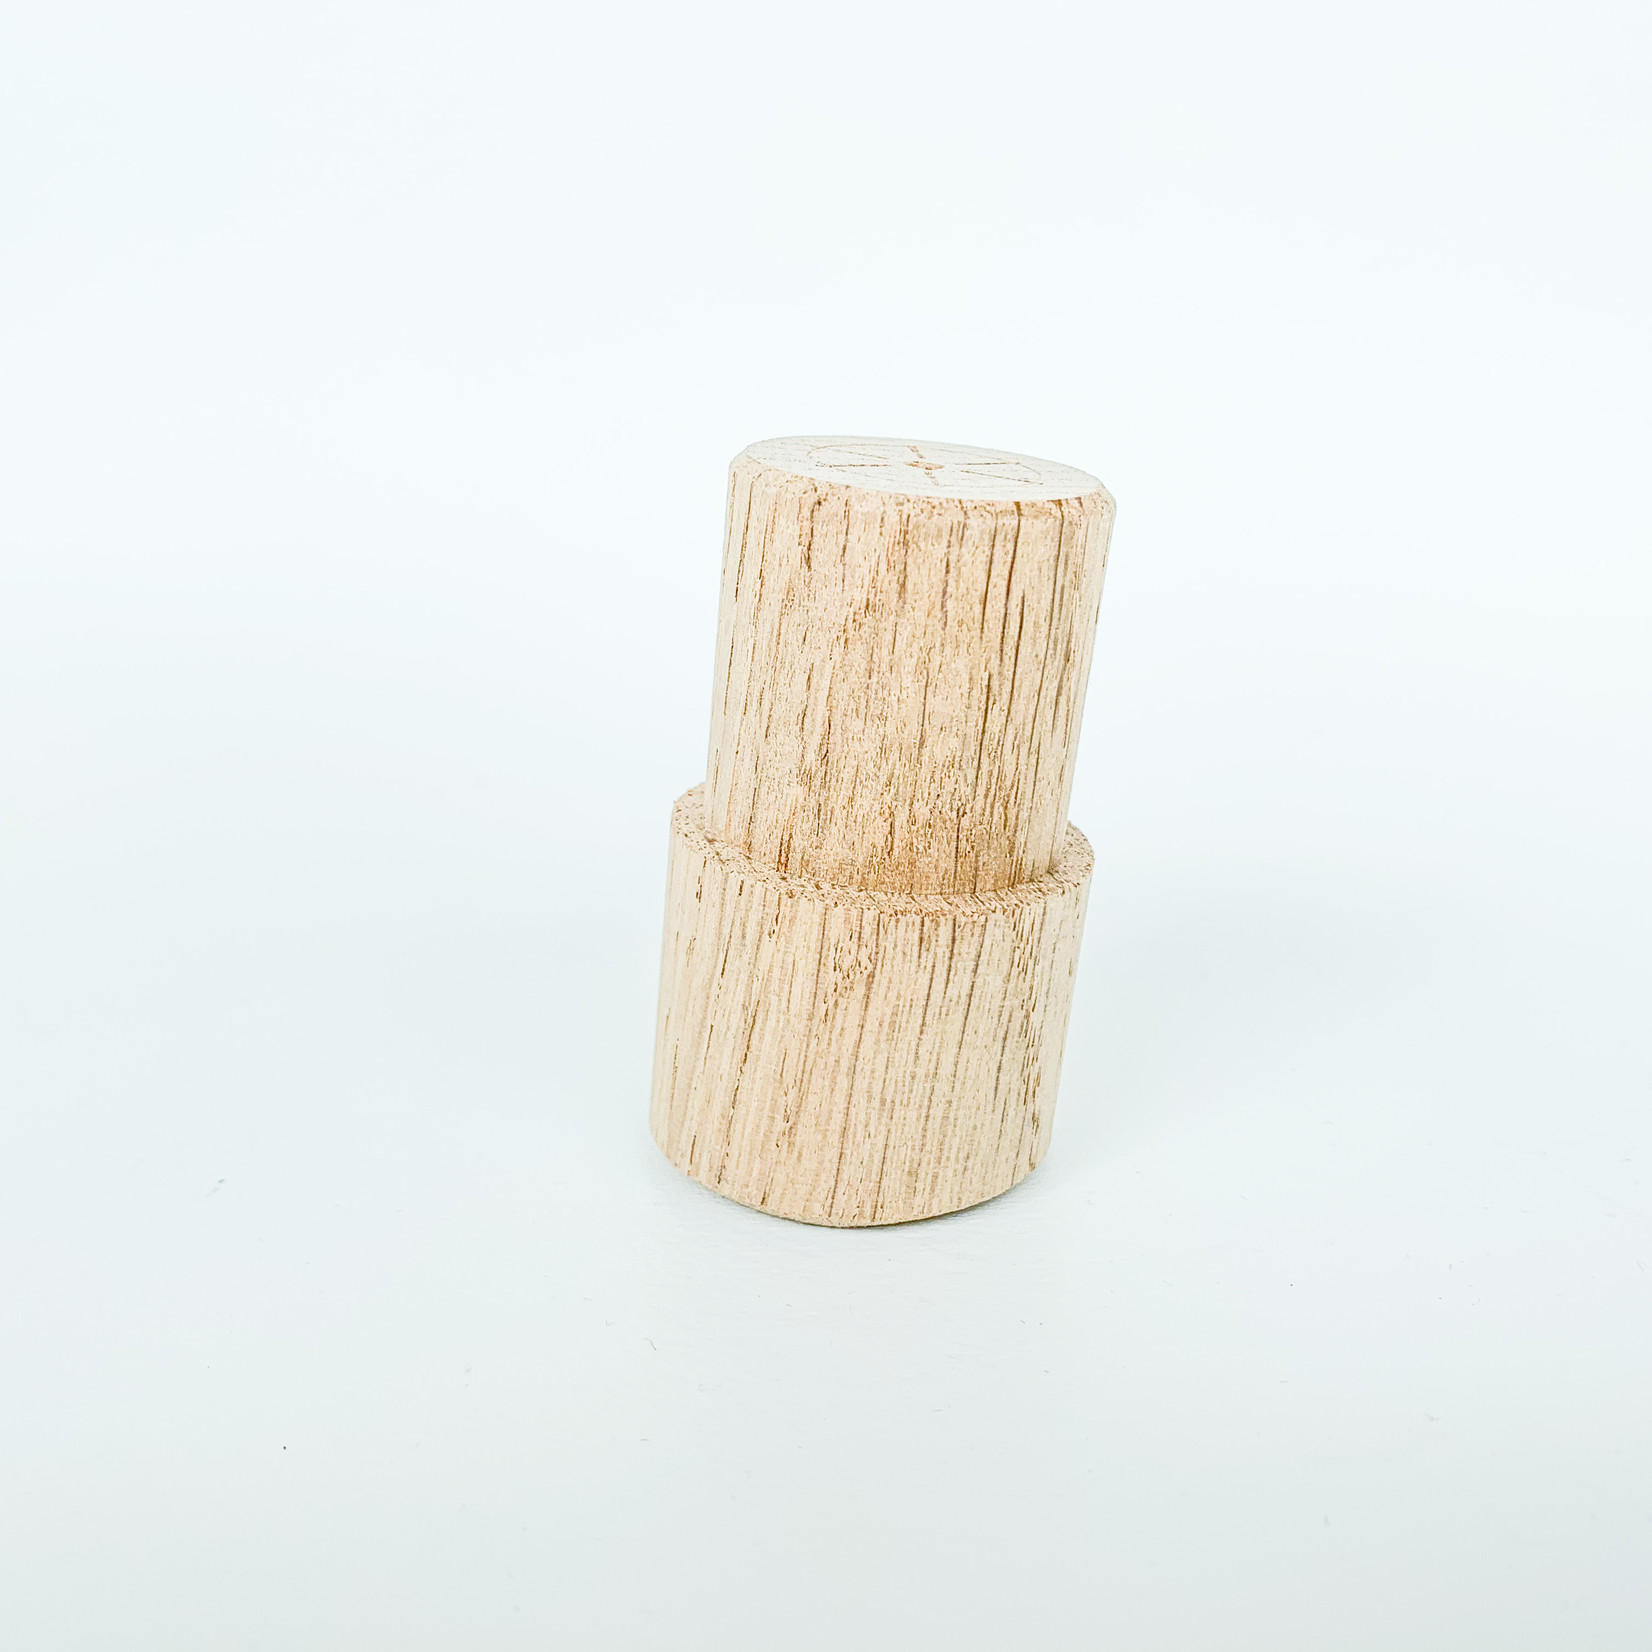 Foxxy -Wooden end (4 pieces)